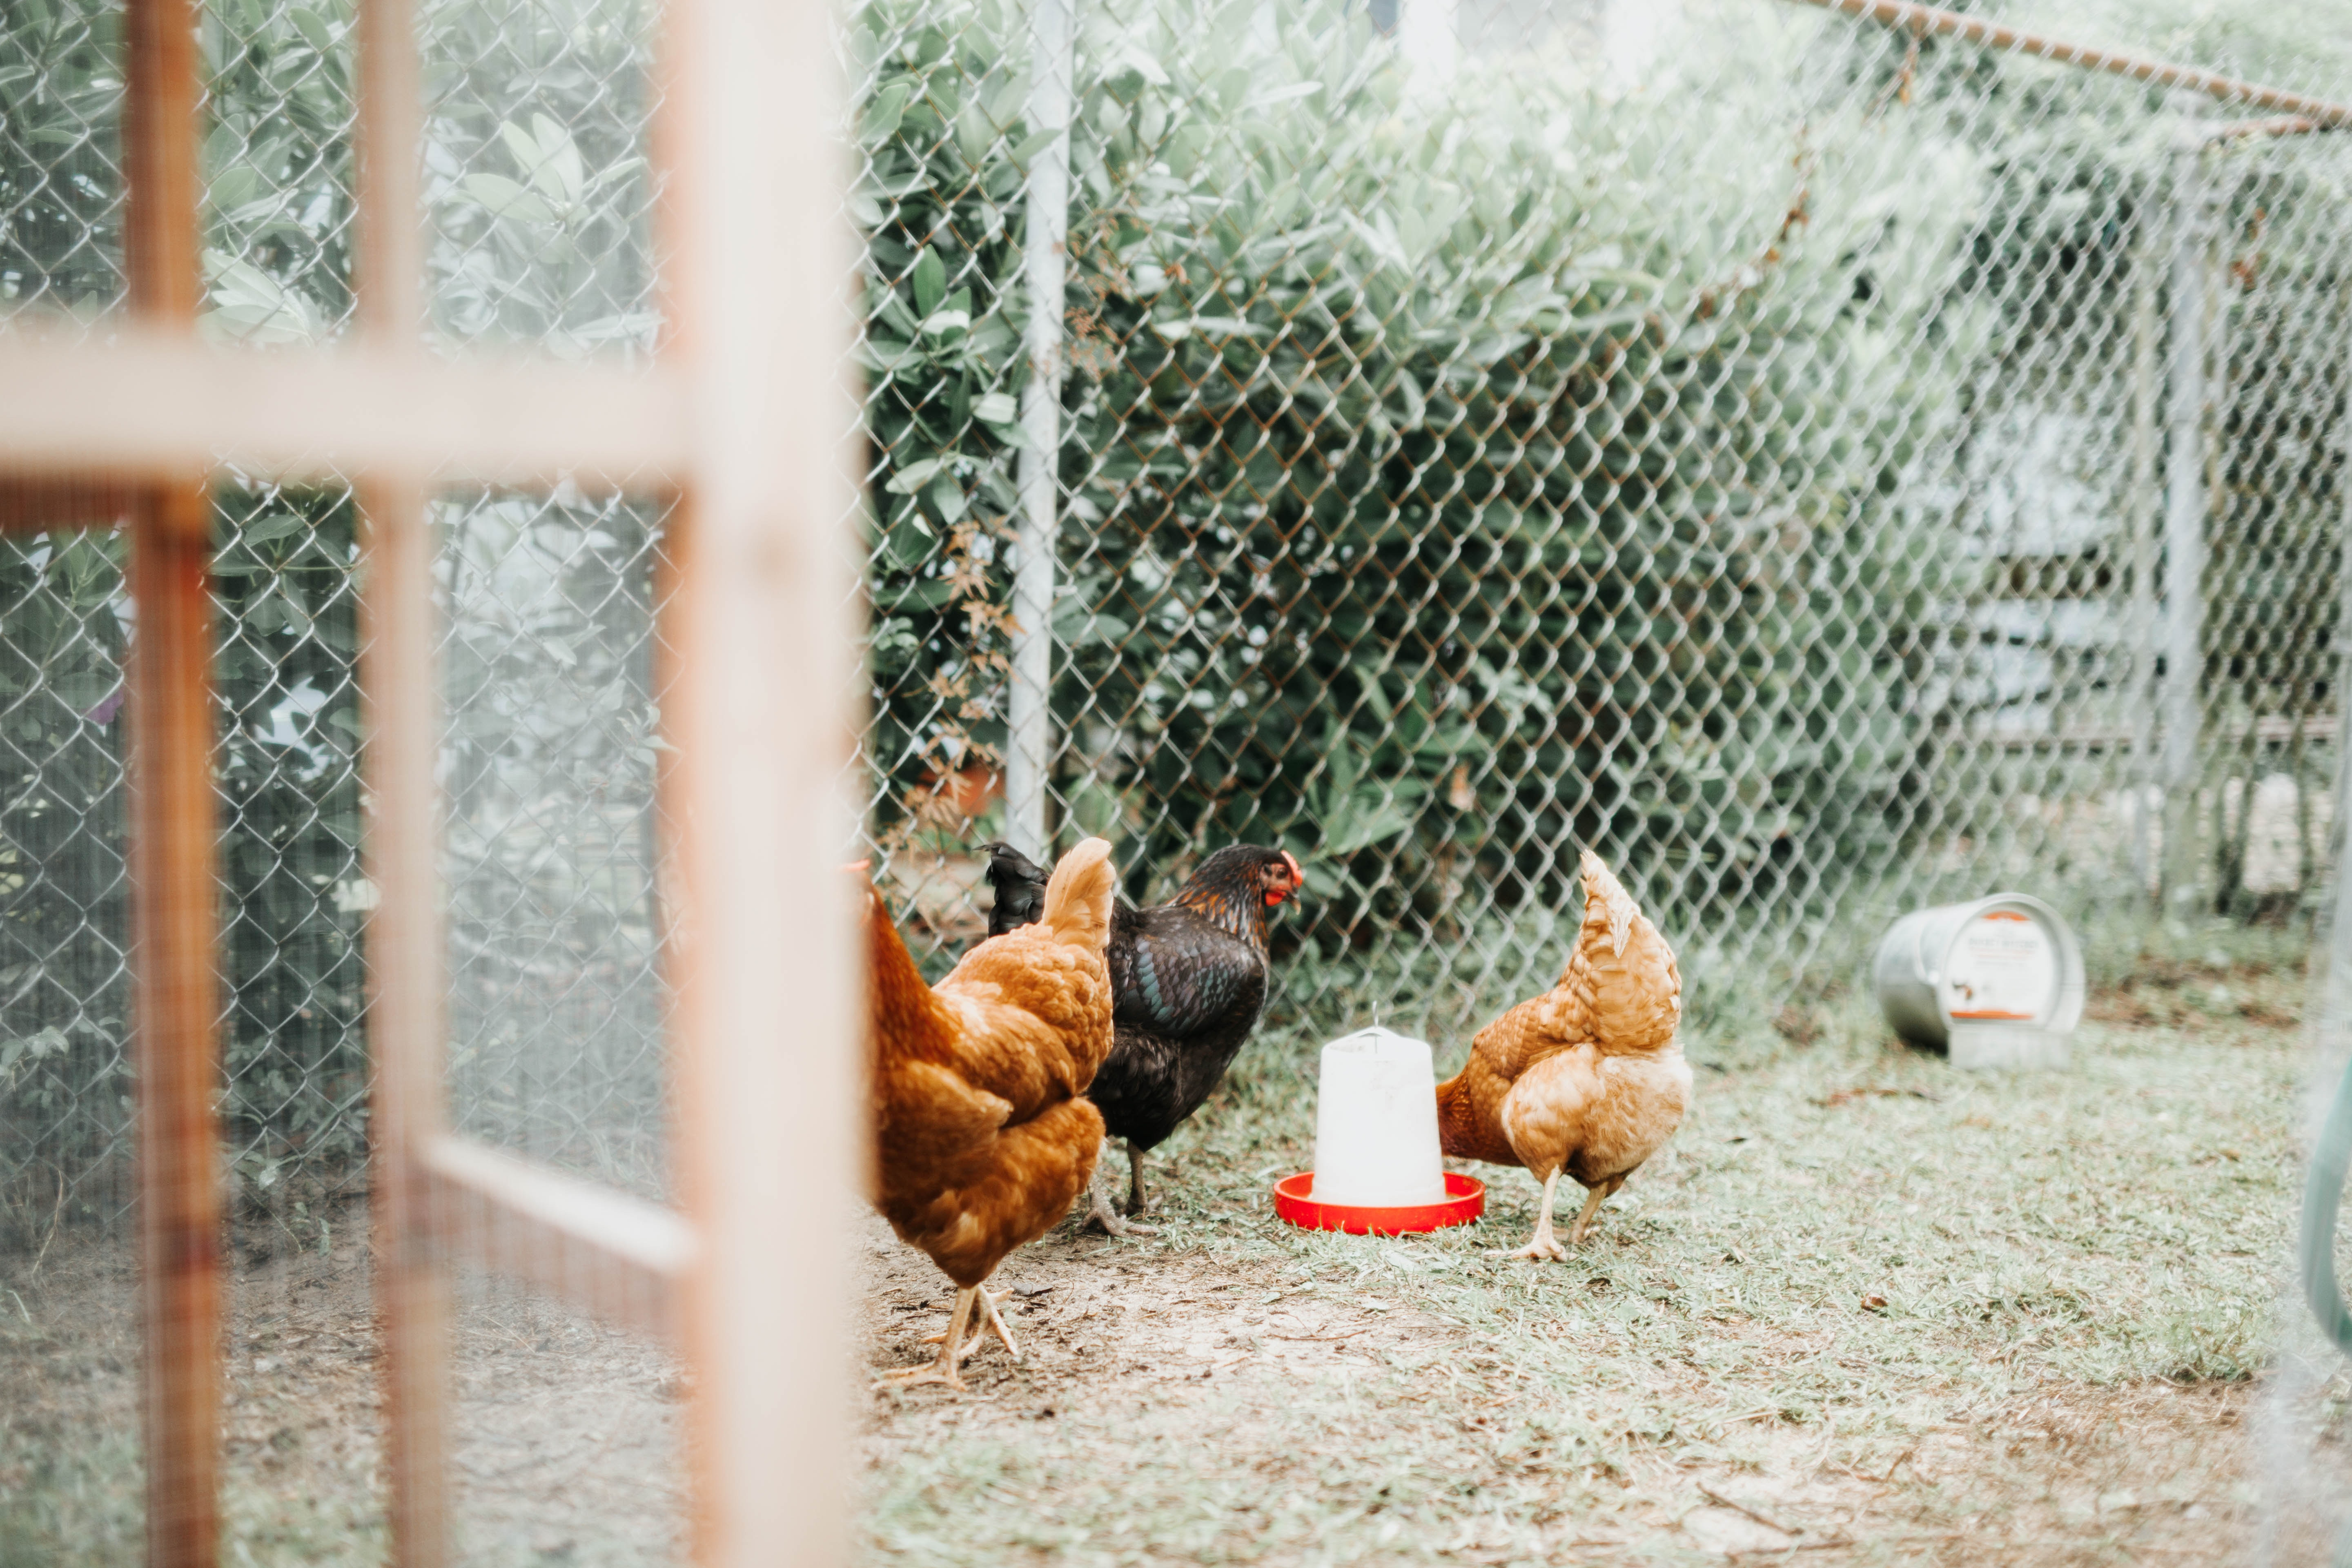 FROM WASTE TO FARM: insect larvae as tool for welfare improvement in poultry